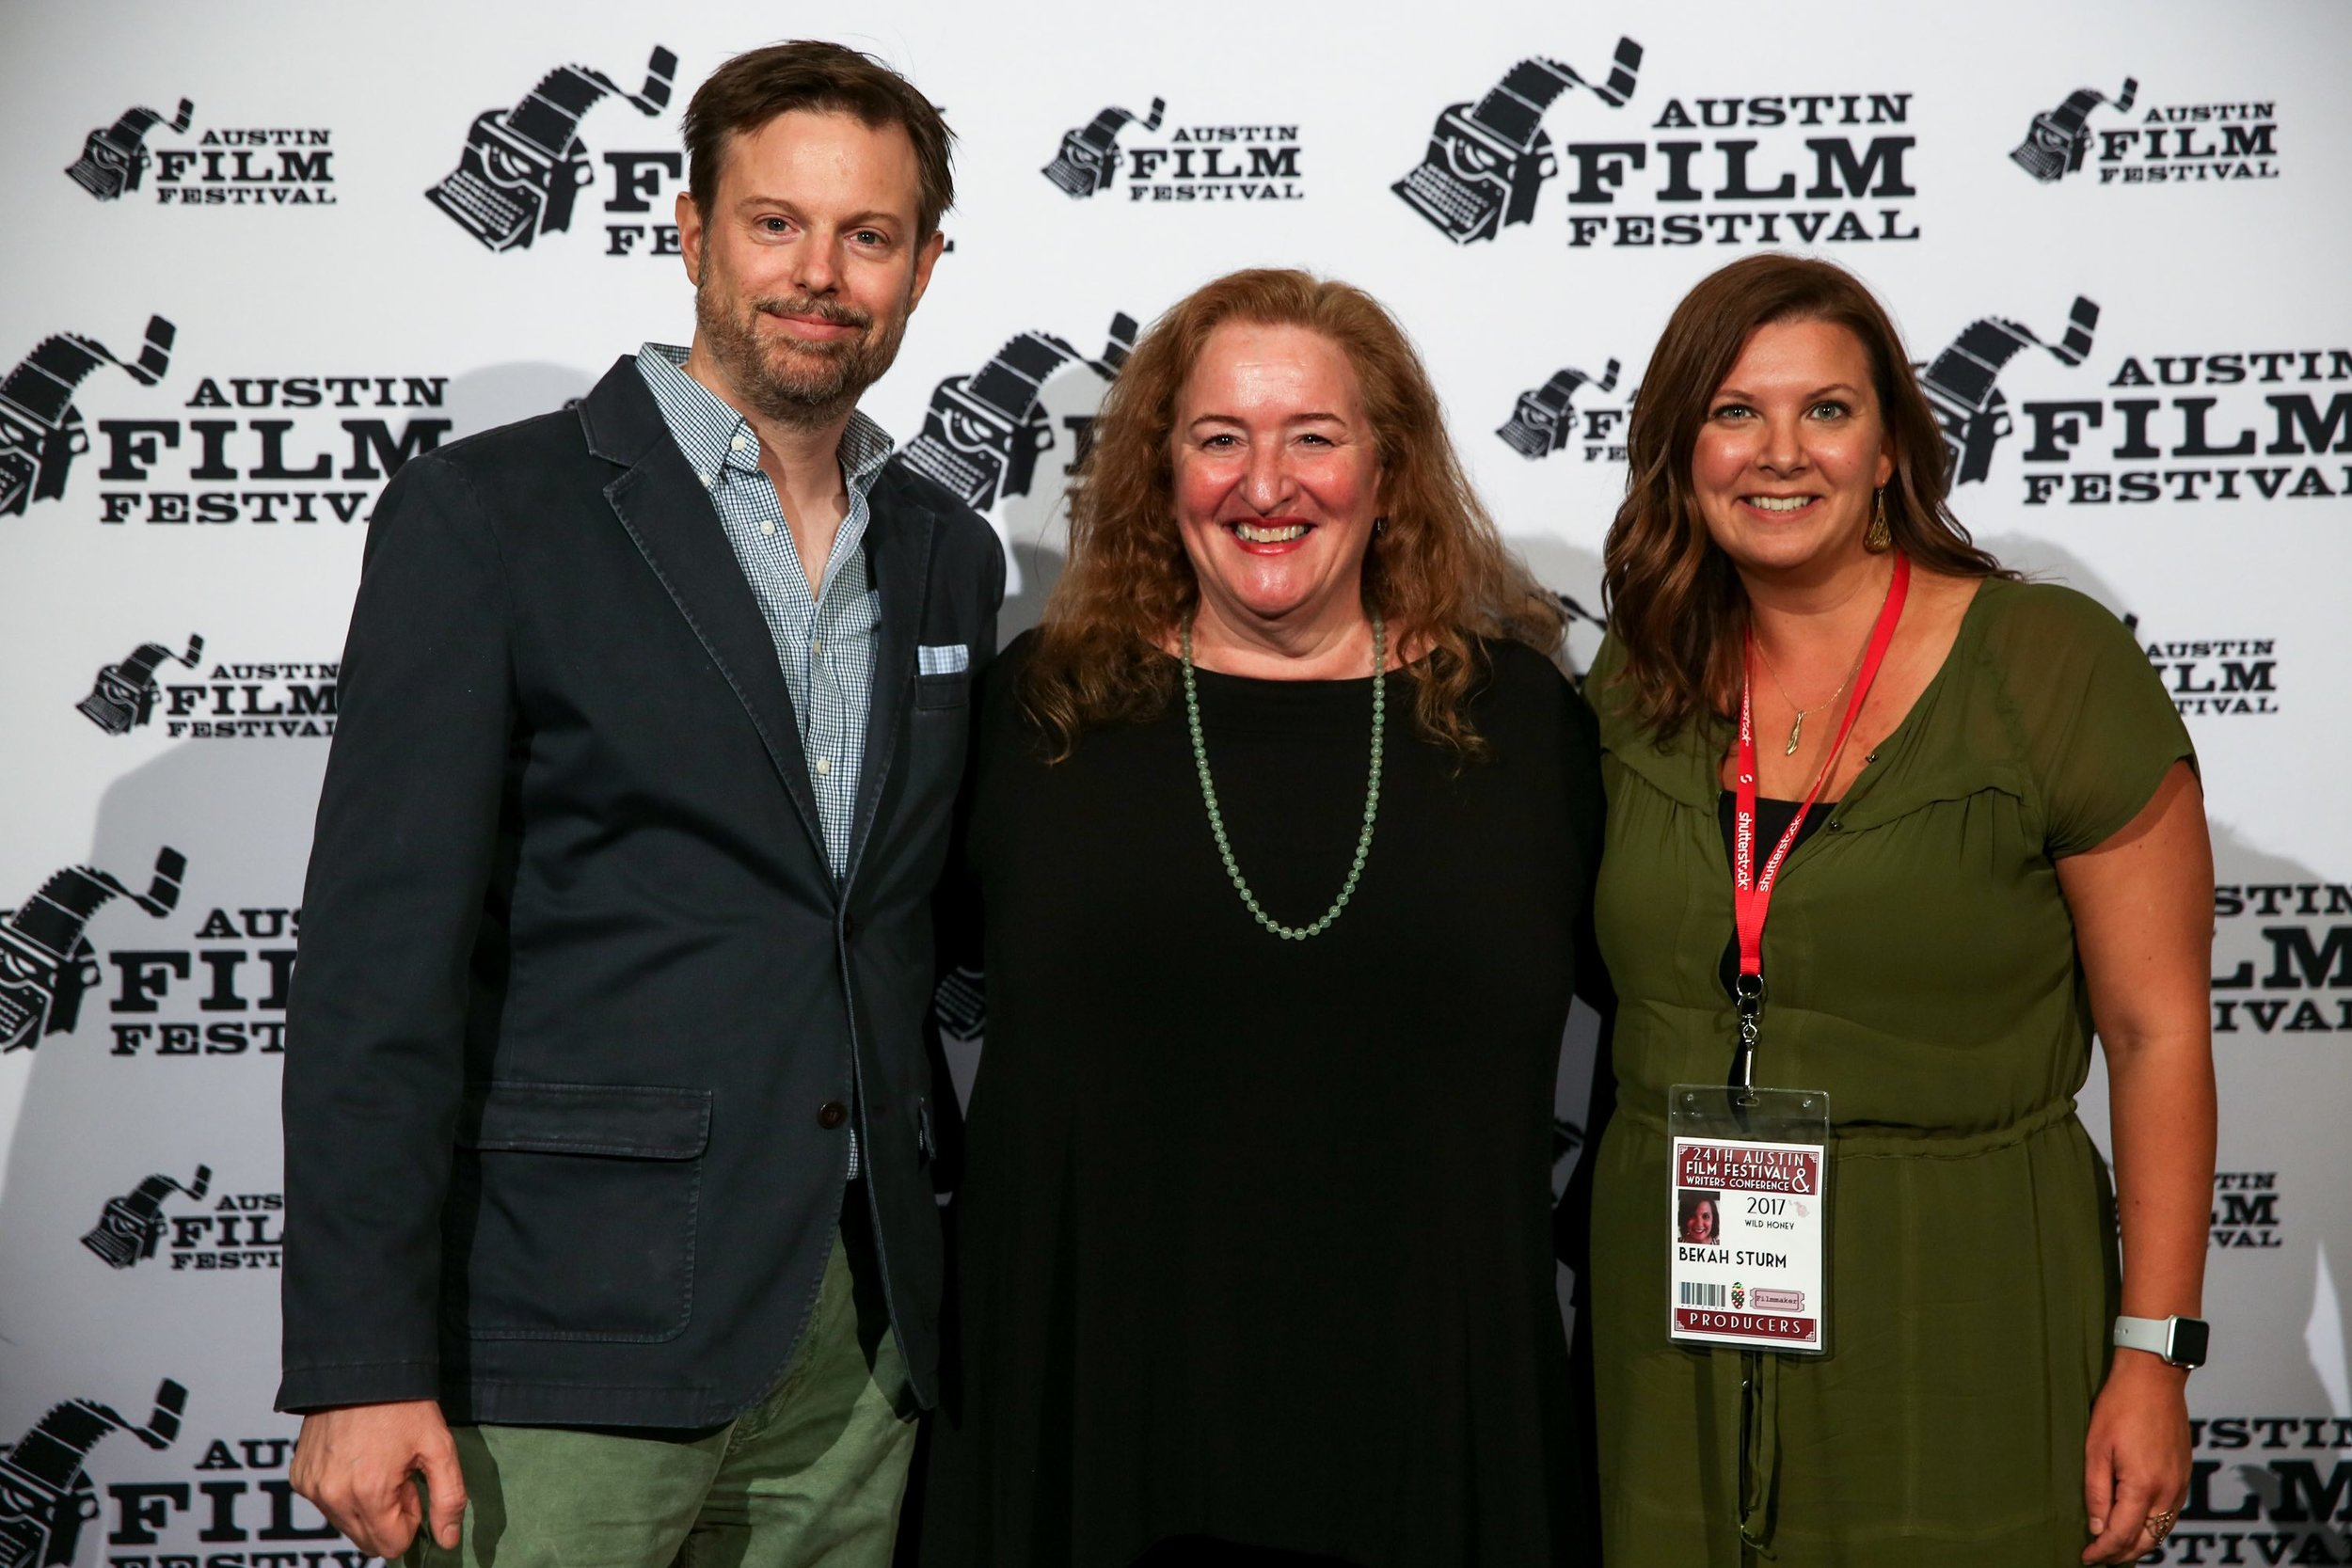 Francis Stokes, Rusty Schwimmer and Rebekah Sturm arrive at Austin Film Festival Photo by Waytao Shing